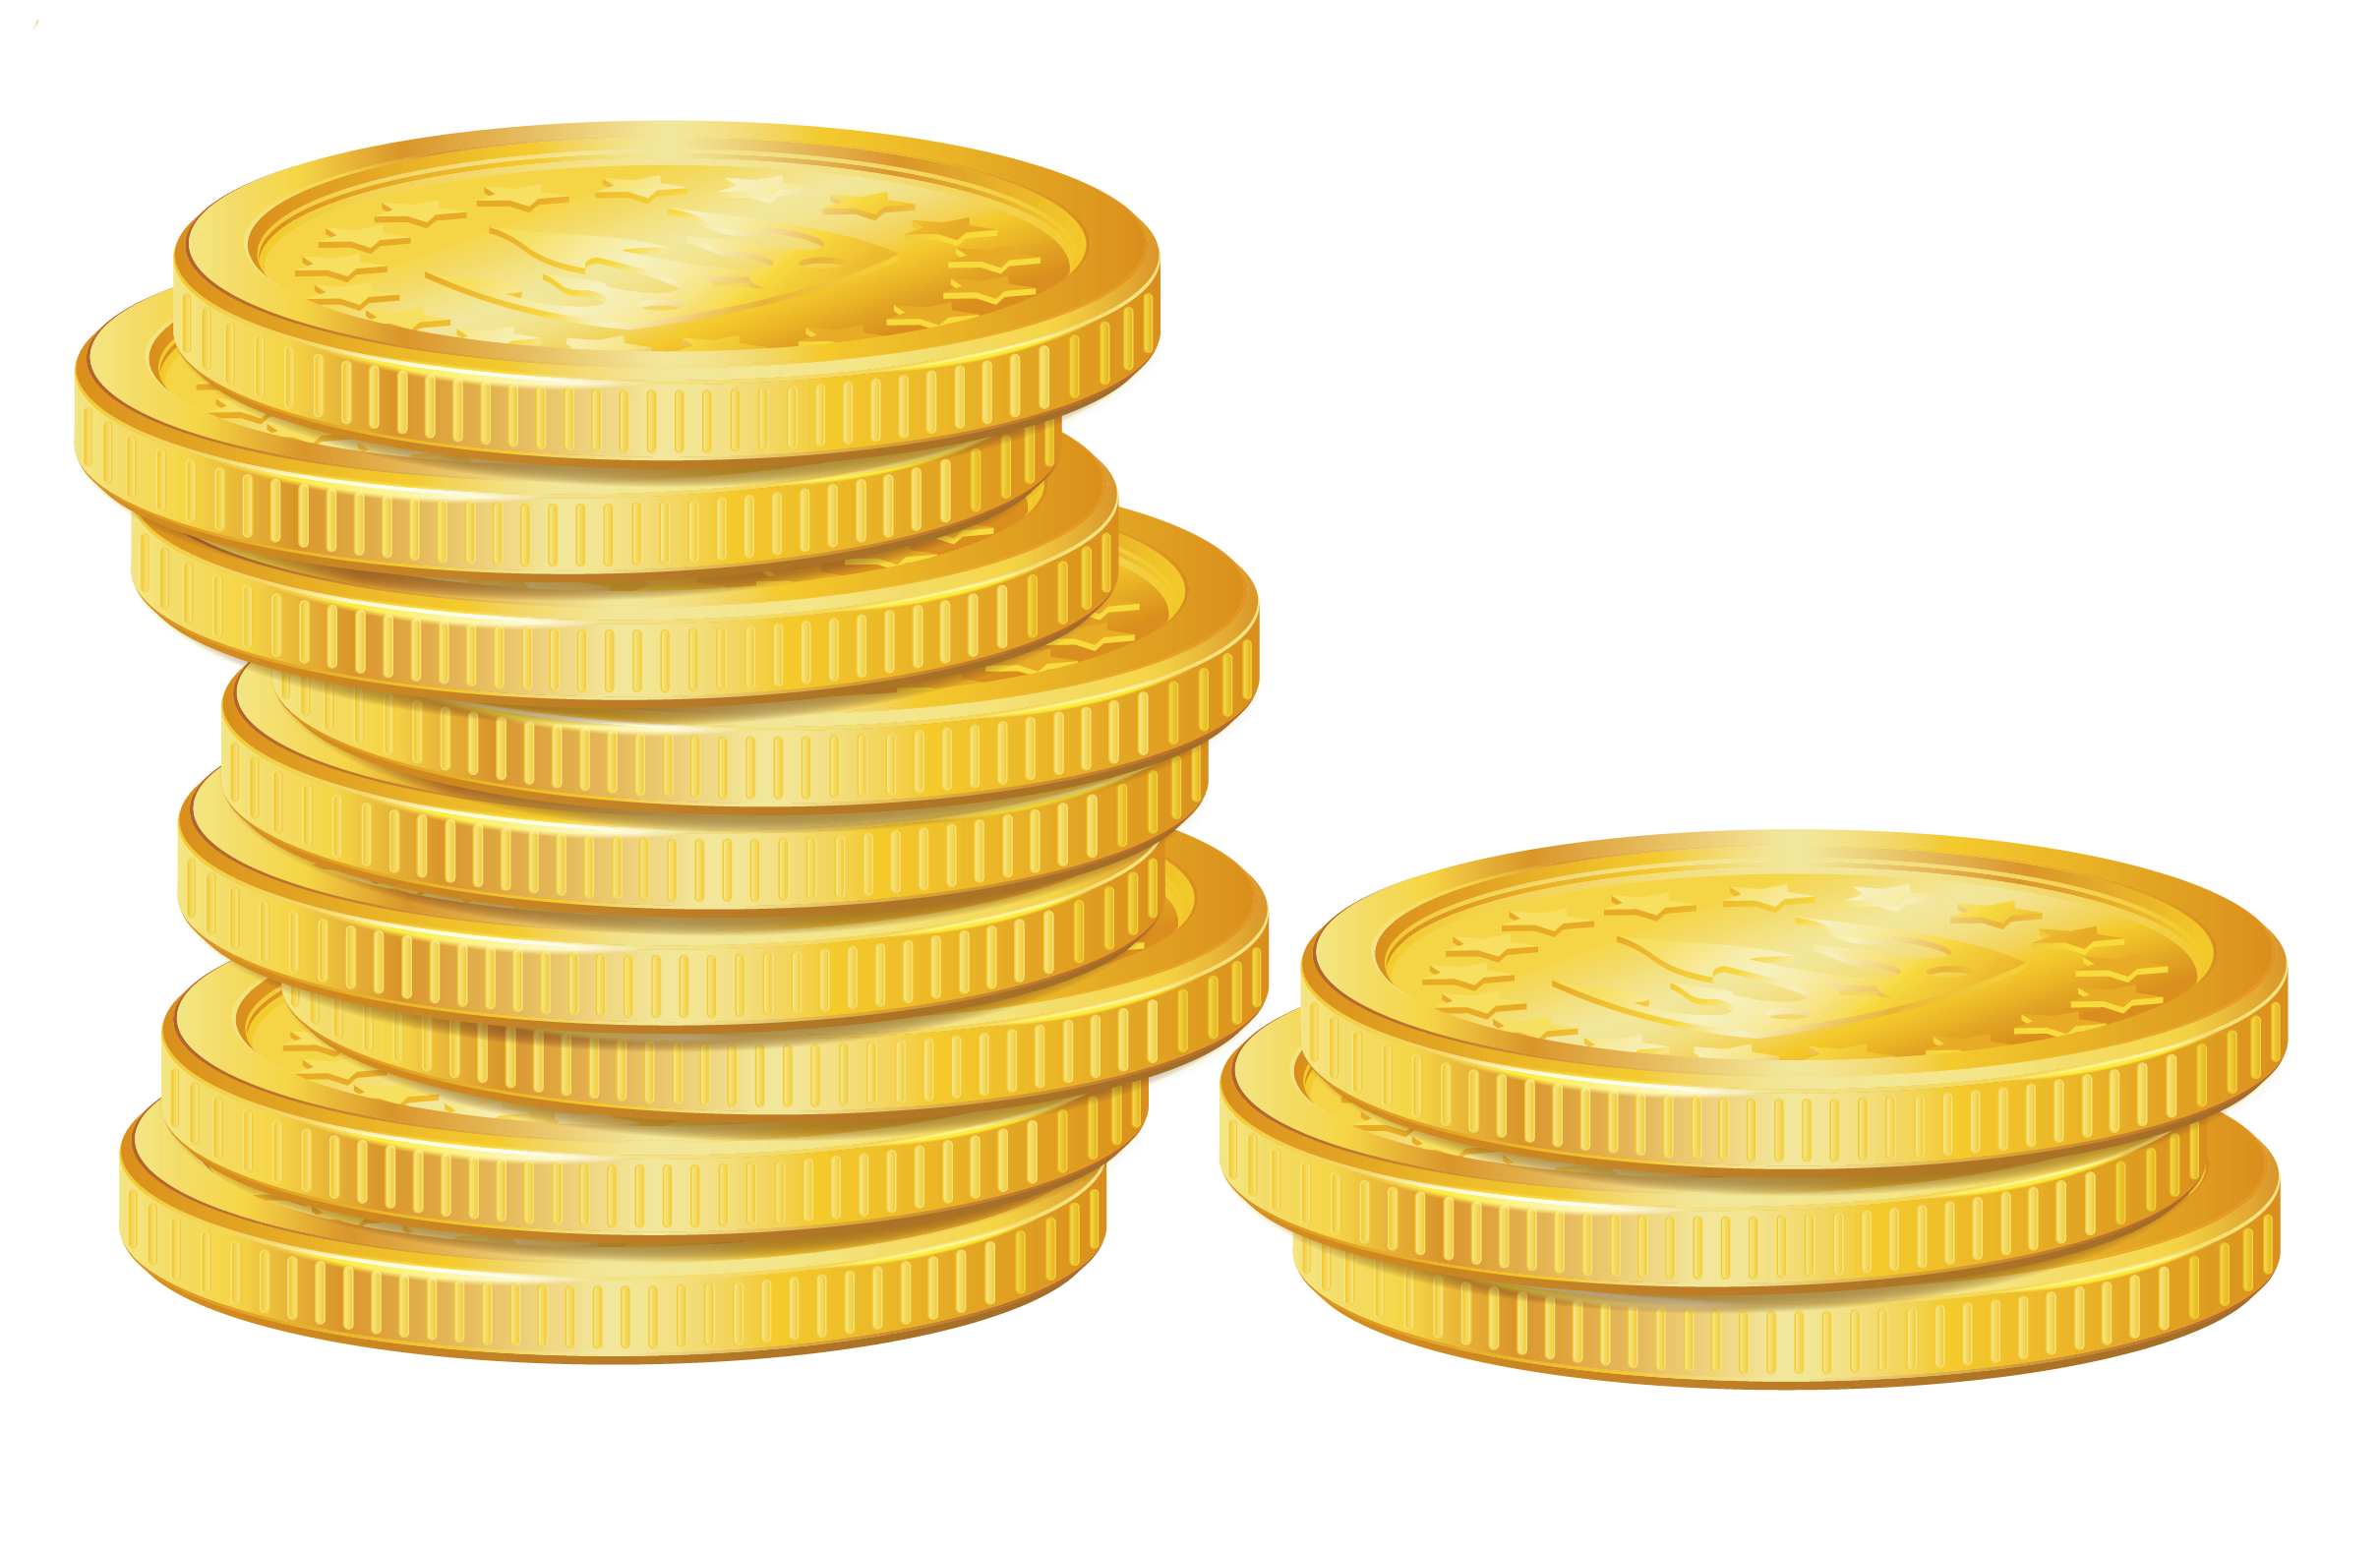 Pile of coins picture clipart - Coin HD PNG